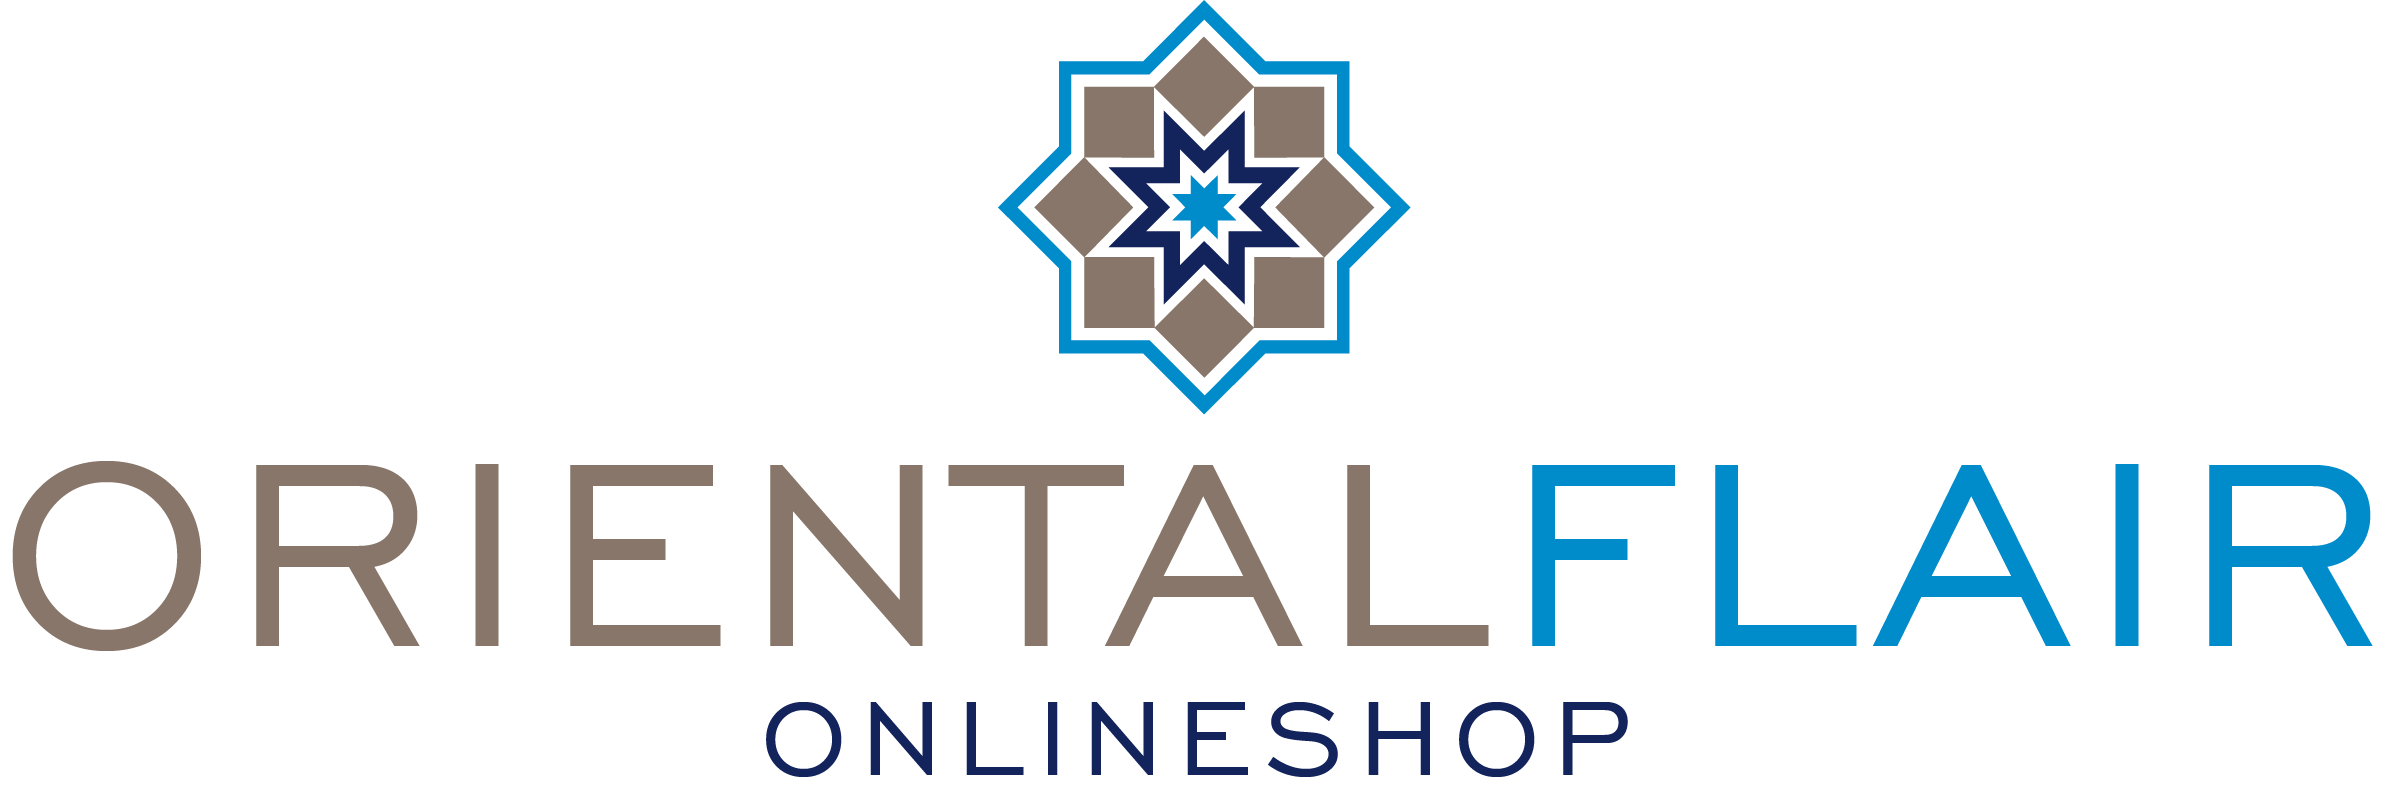 Oriental Flair - Onlineshop